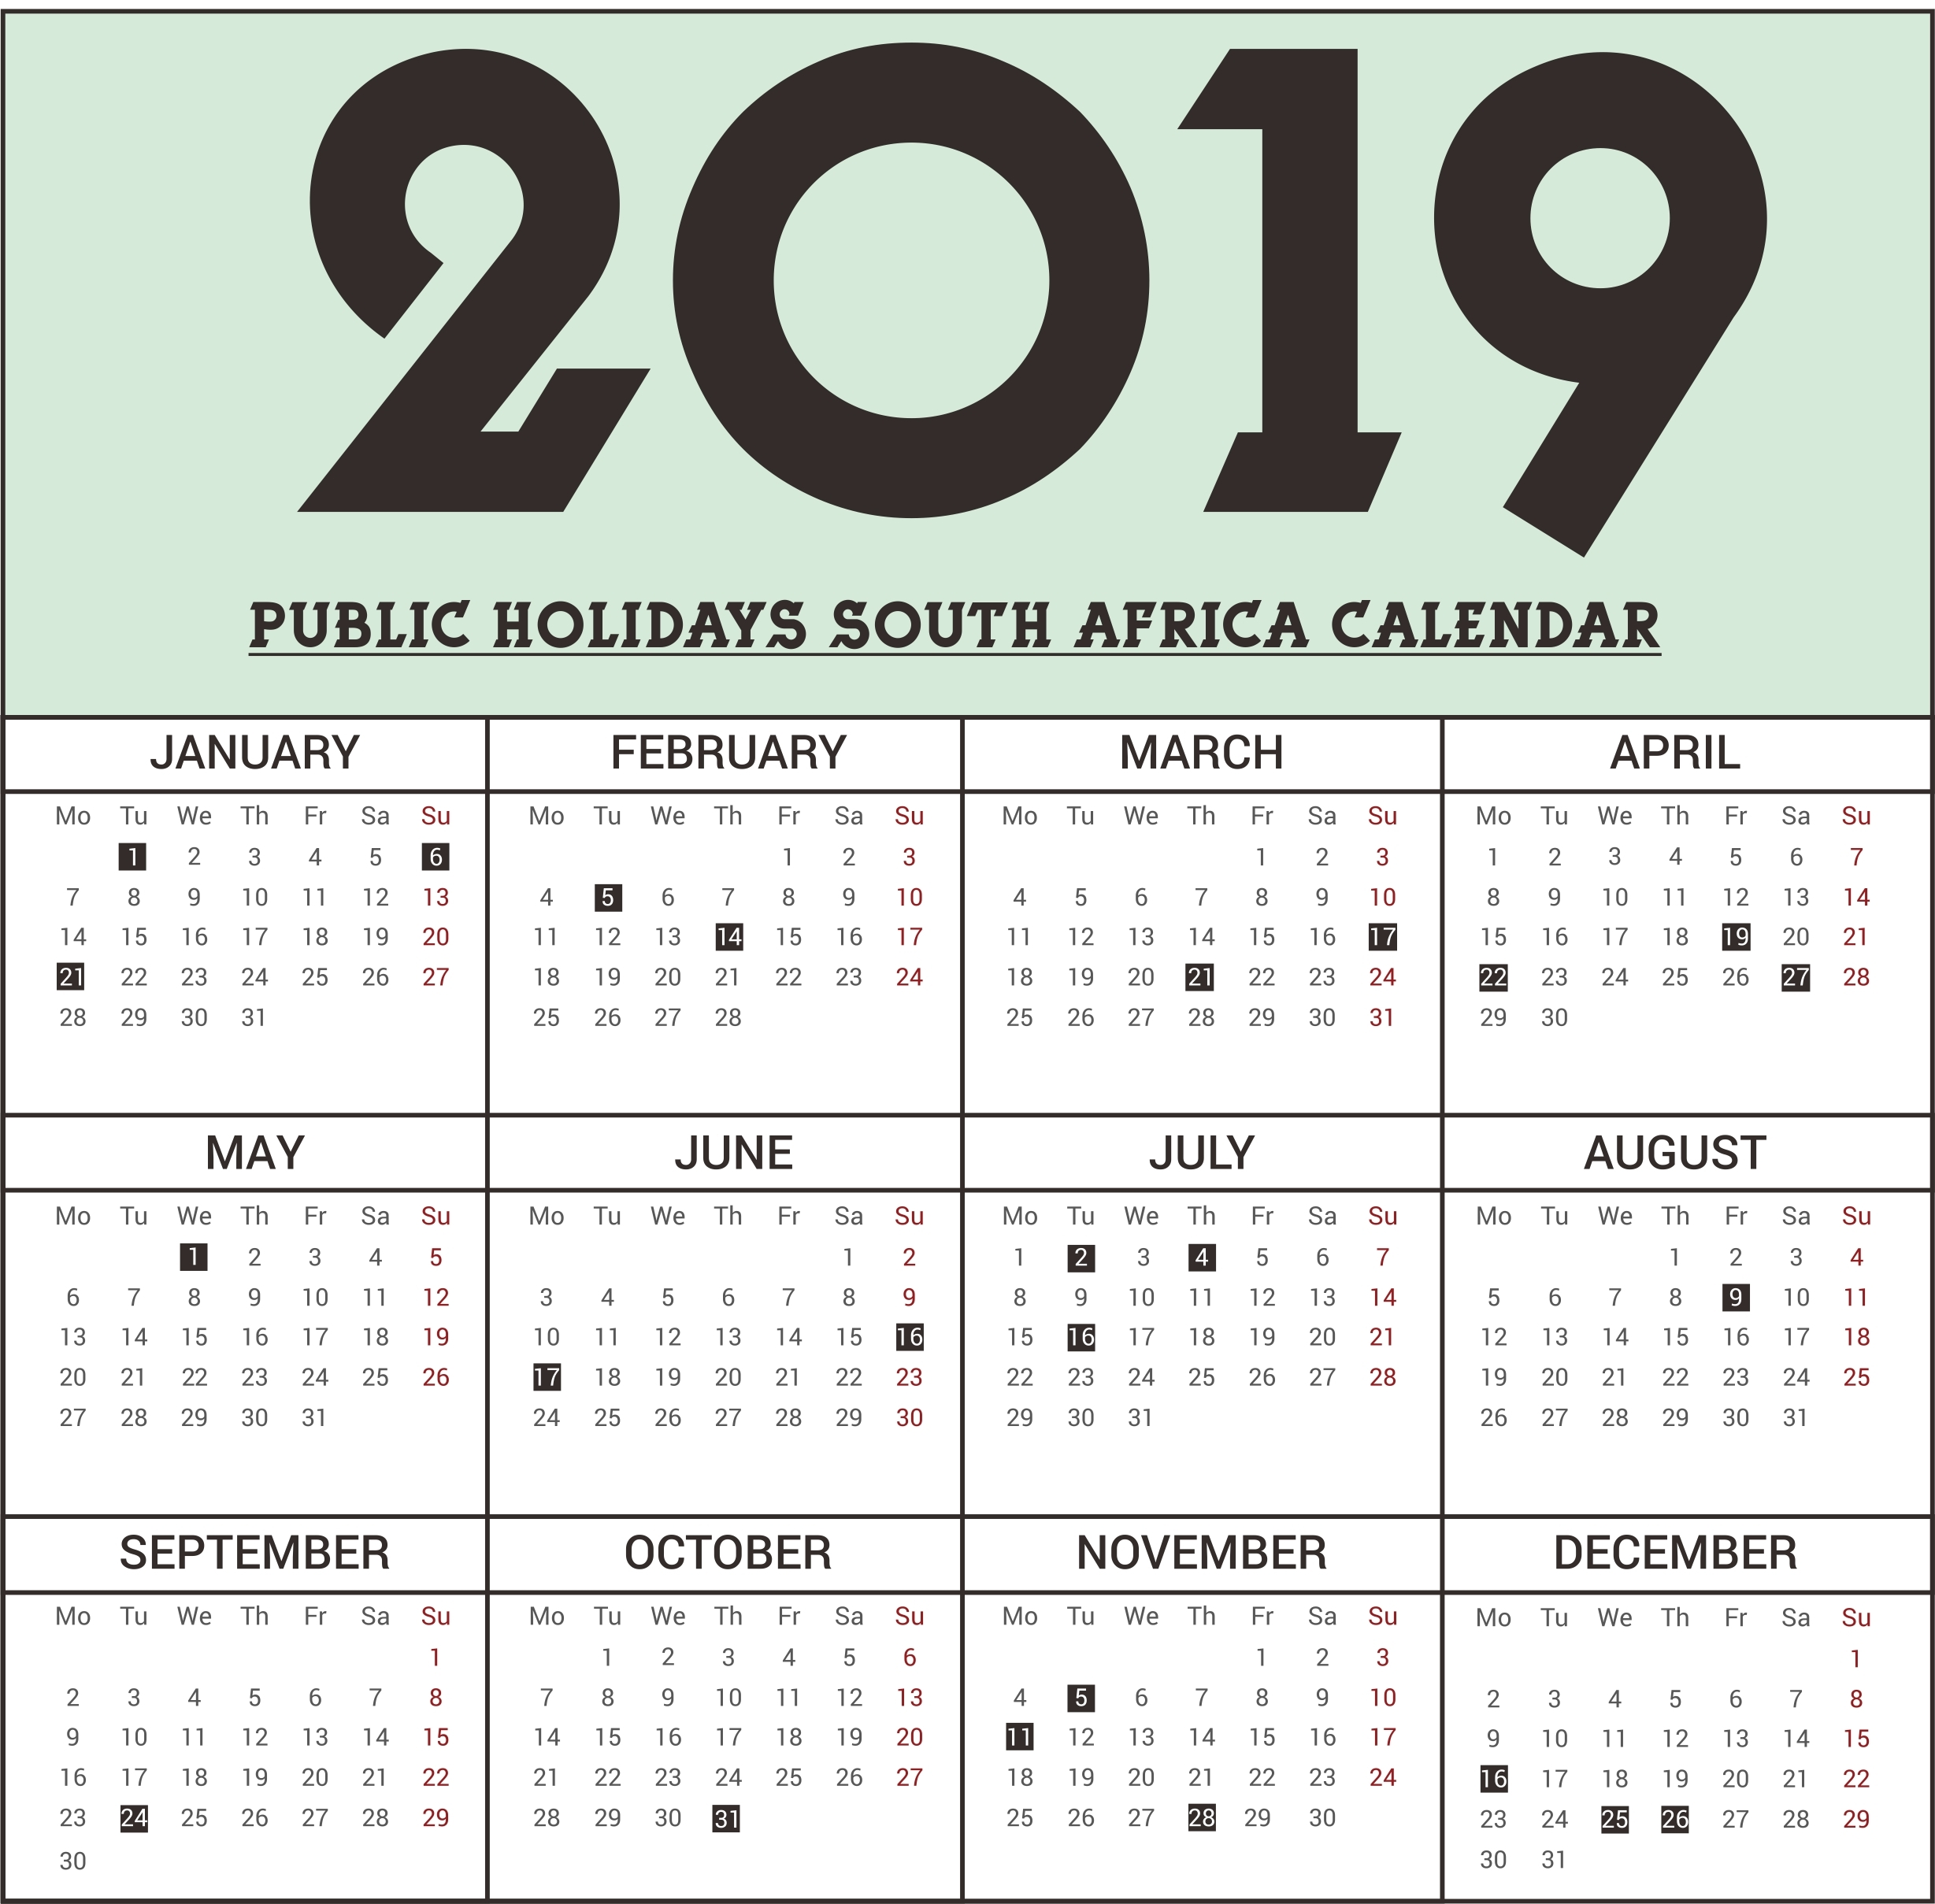 Calendar Holidays 2019 South Africa • Printable Blank-Public Holidays South Africa